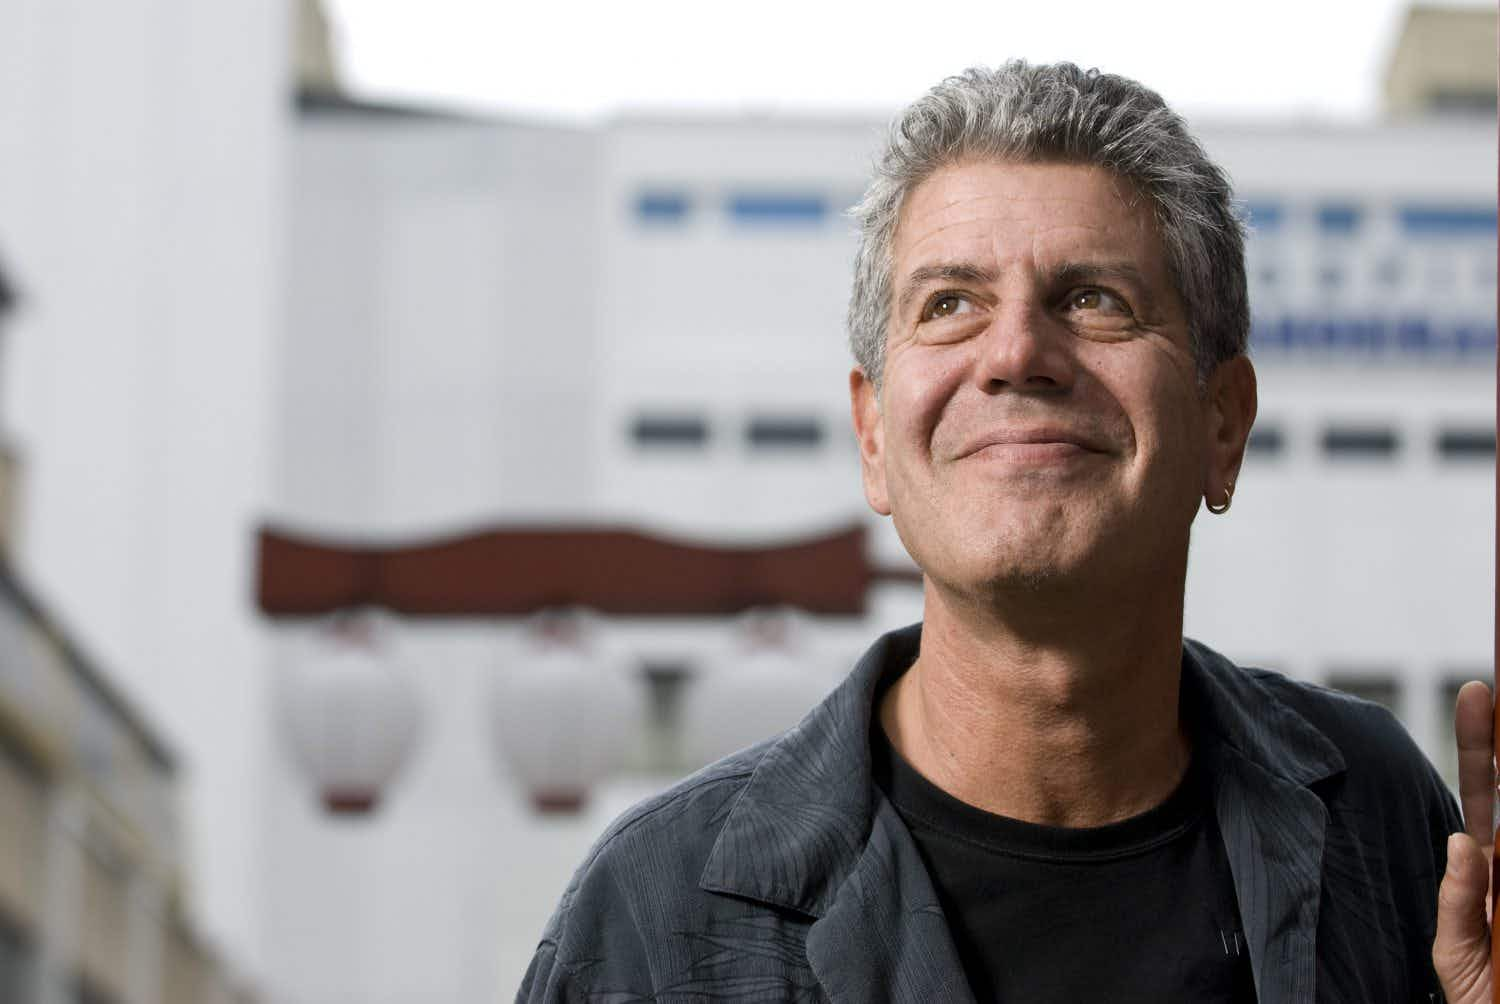 Here's how to celebrate the late chef and travel documentary star Anthony Bourdain's legacy